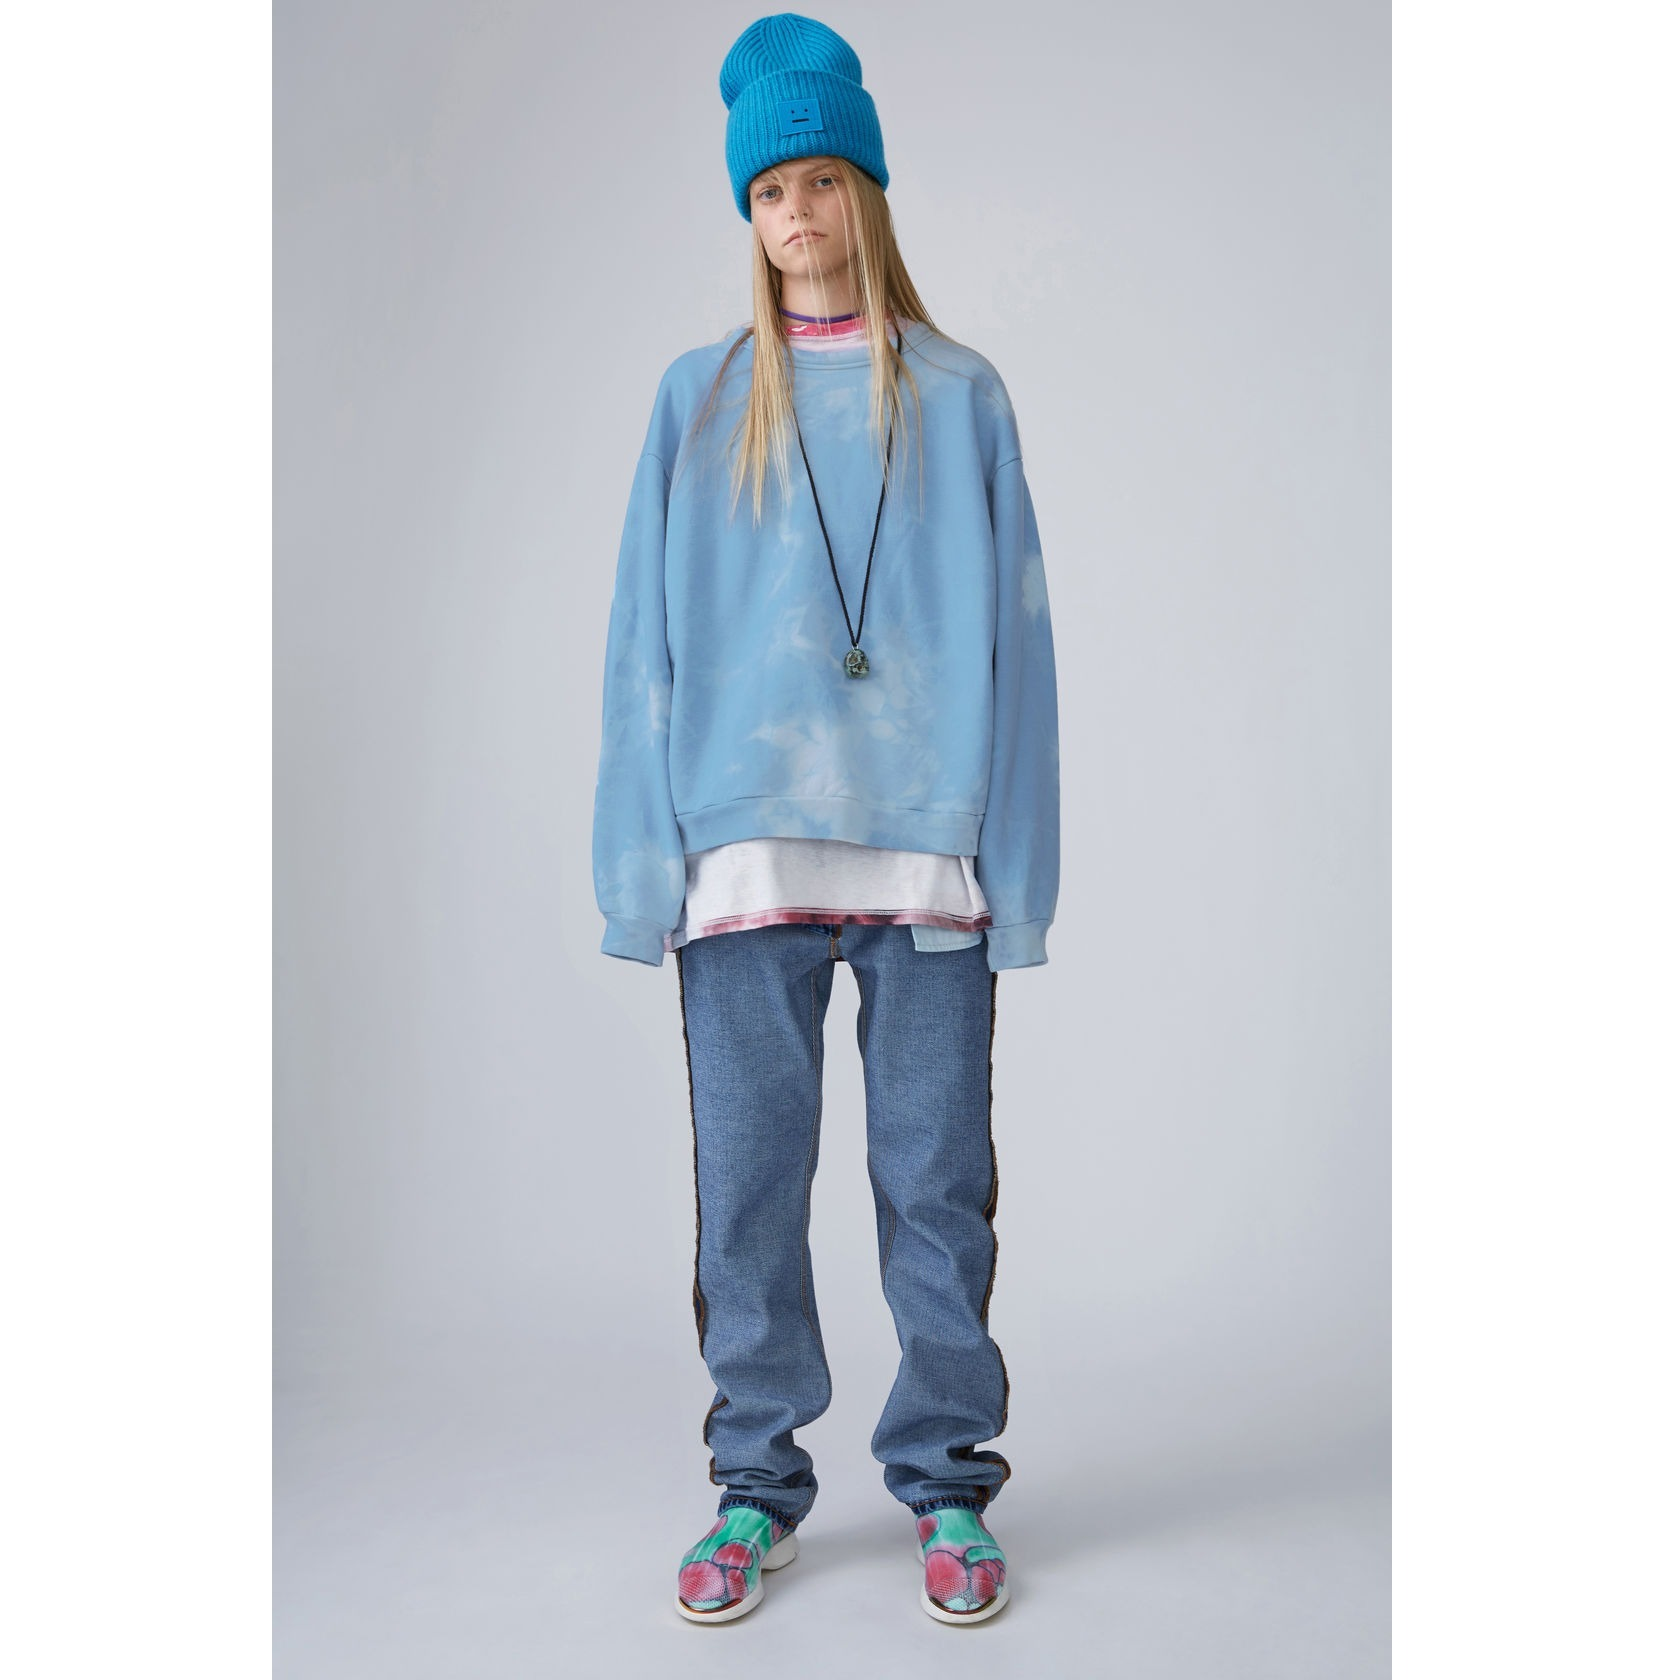 [Acne] Yana Fint Bear sky blue bleach ベアブリーチスウェット